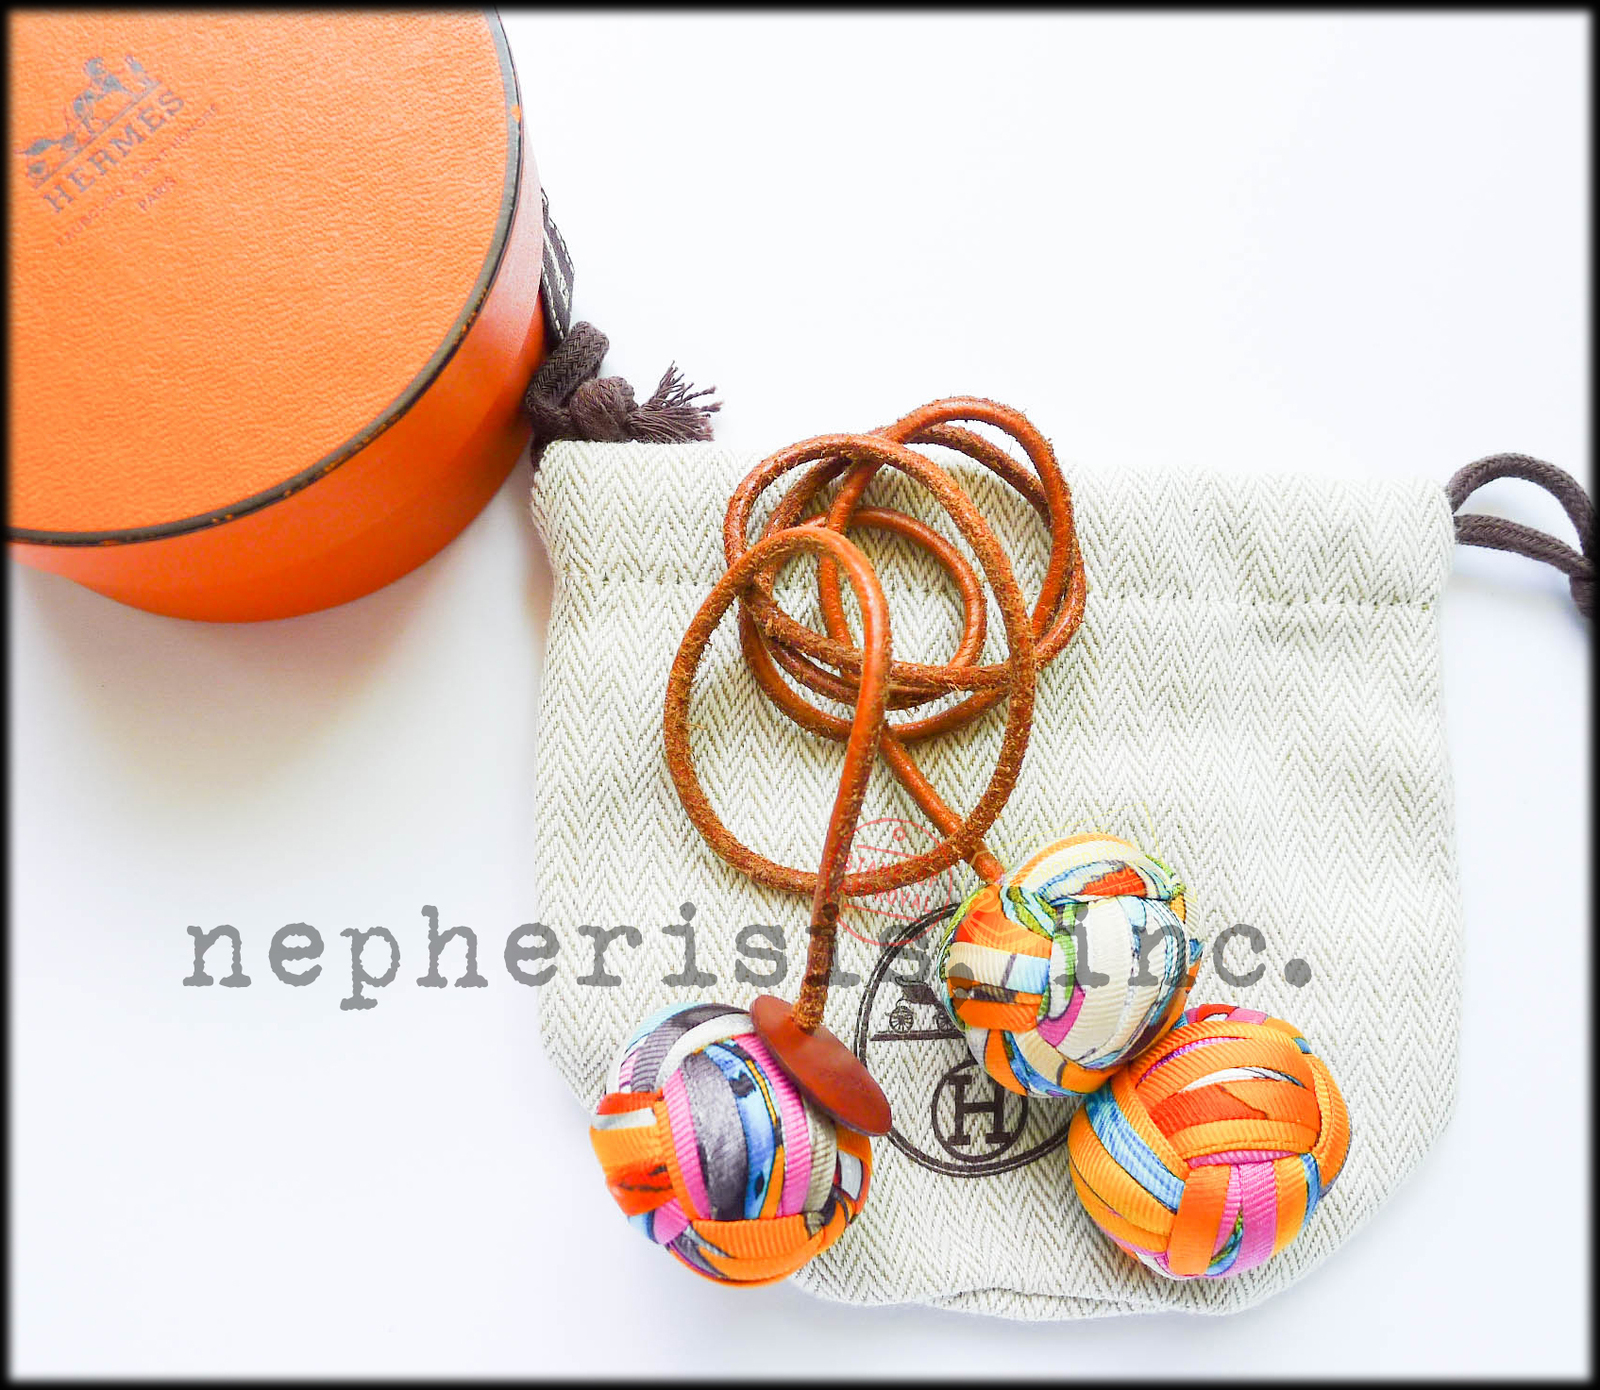 Hermes Baby Gifts Uk : Rare hermes silk pompom pom bag charm with box dust